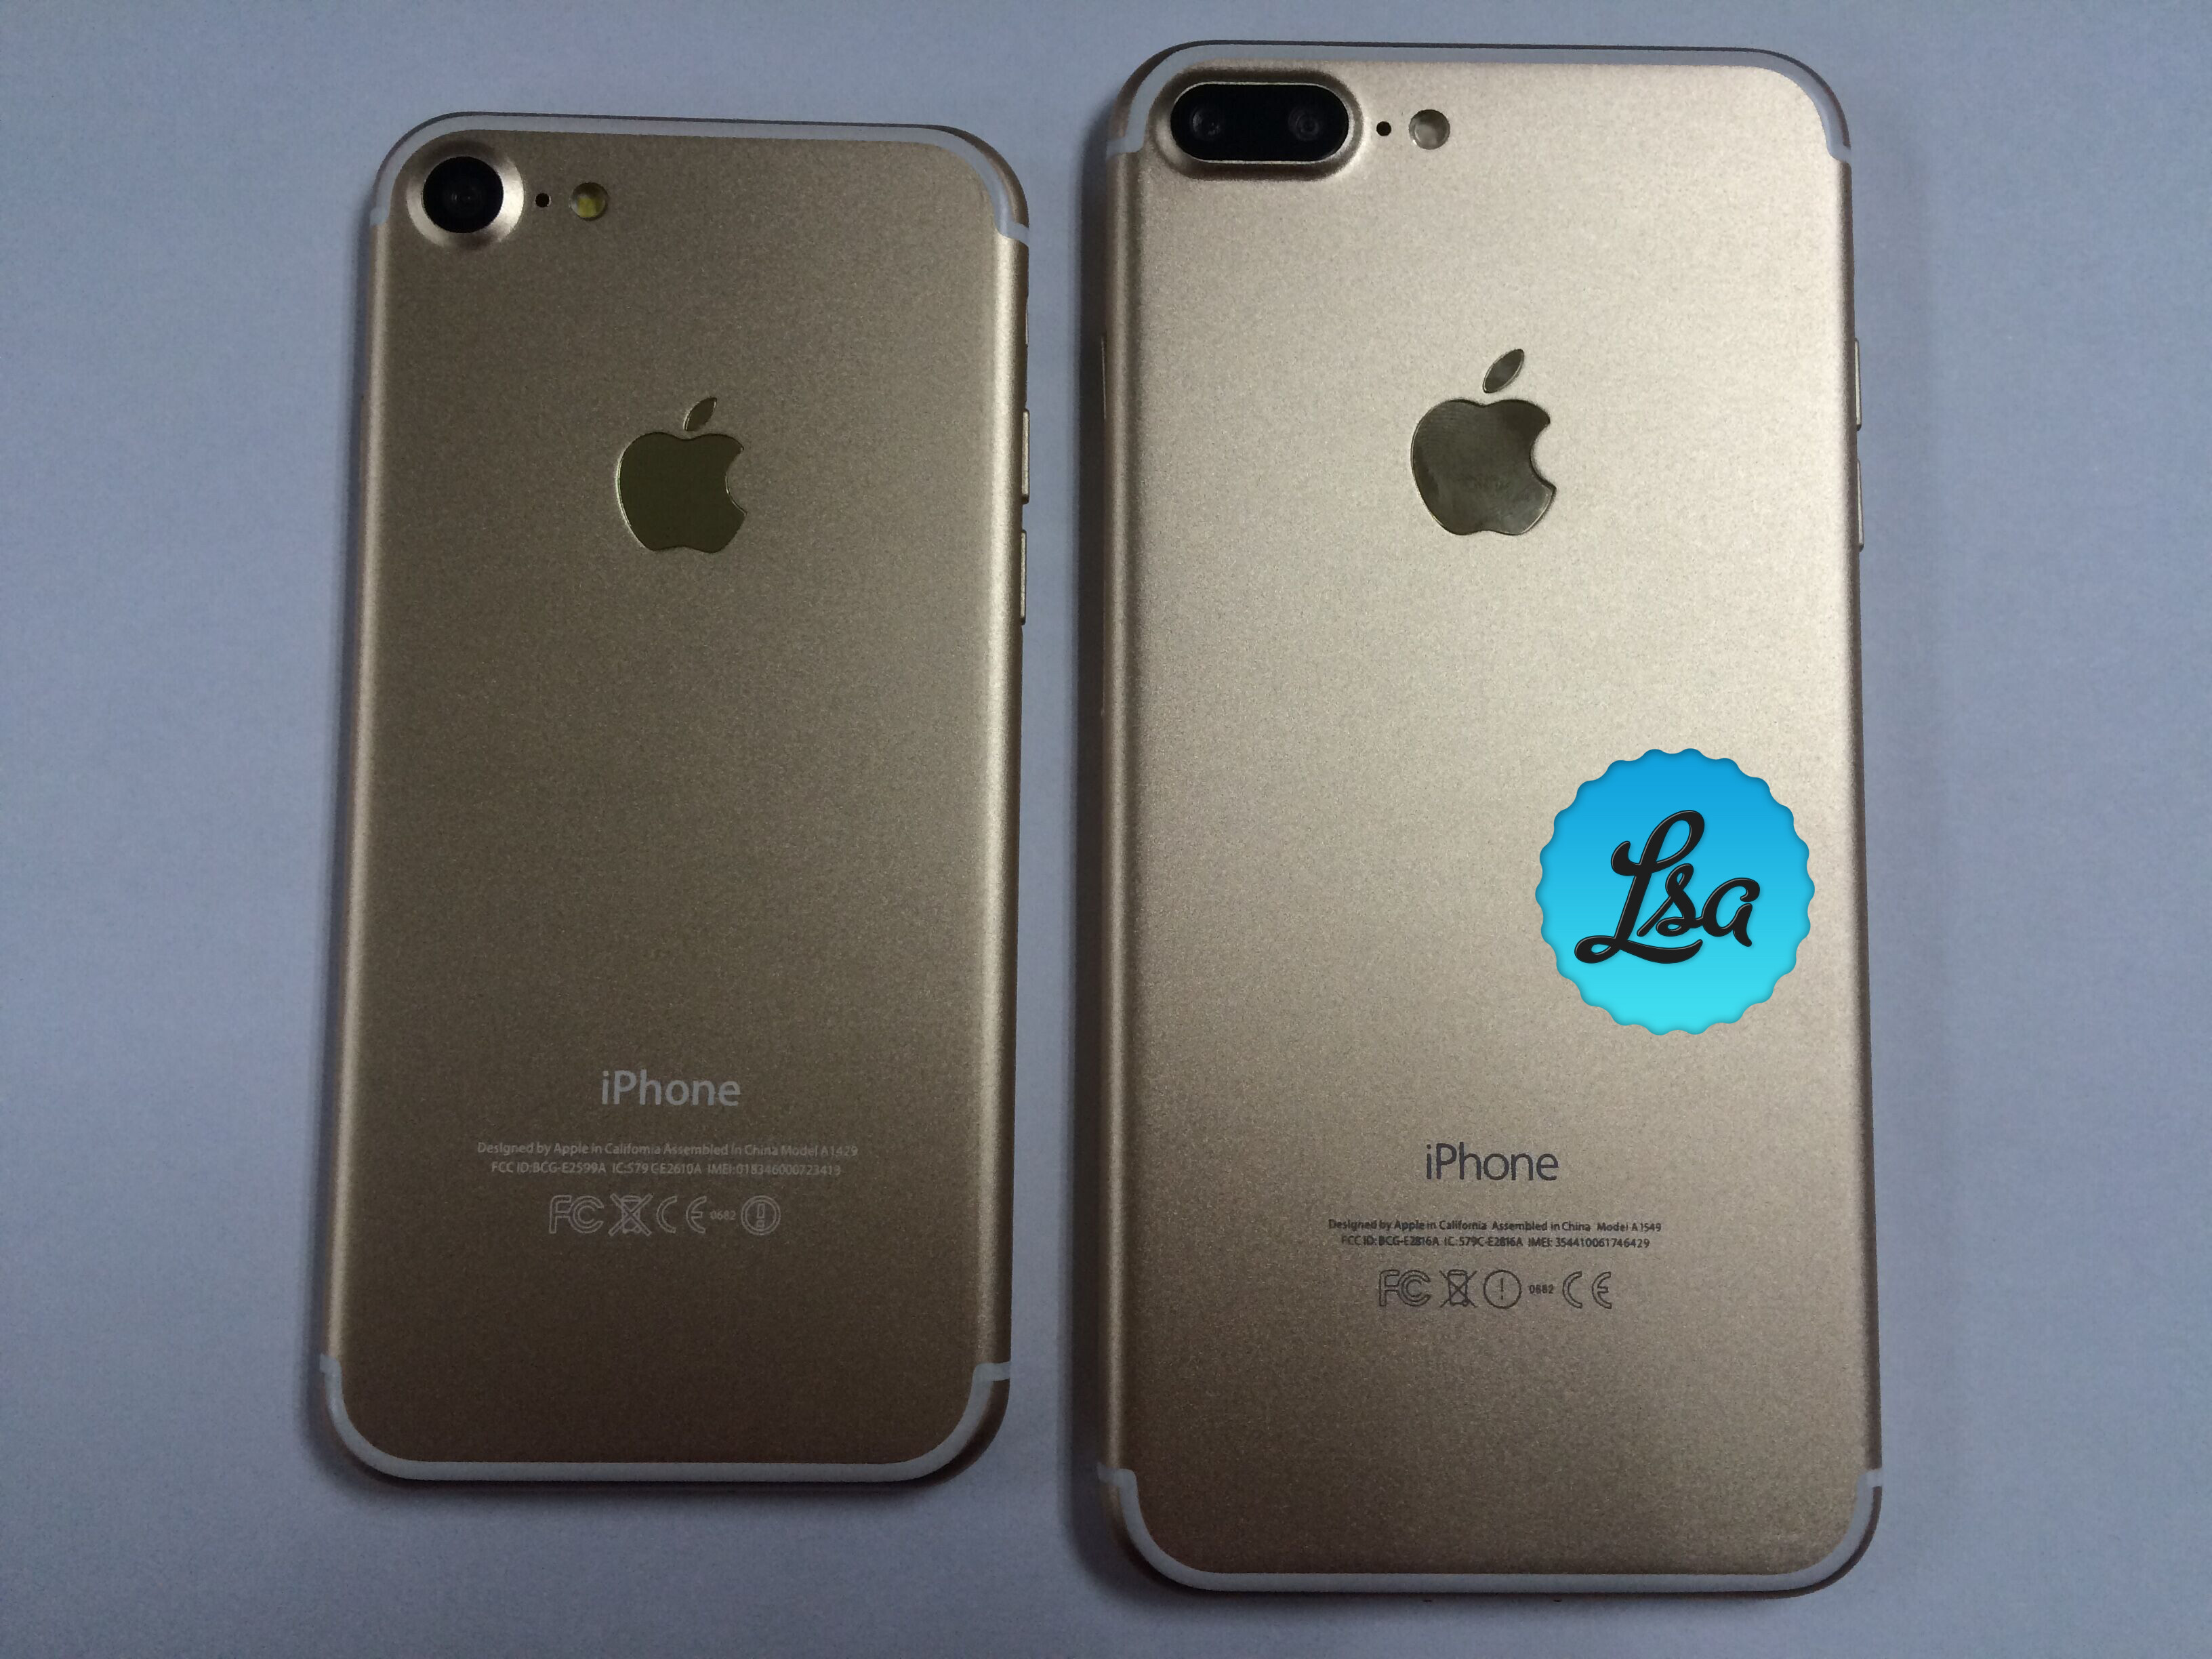 Gold and Space Black Apple iPhone 7 and iPhone 7 Plus units smile for the camera